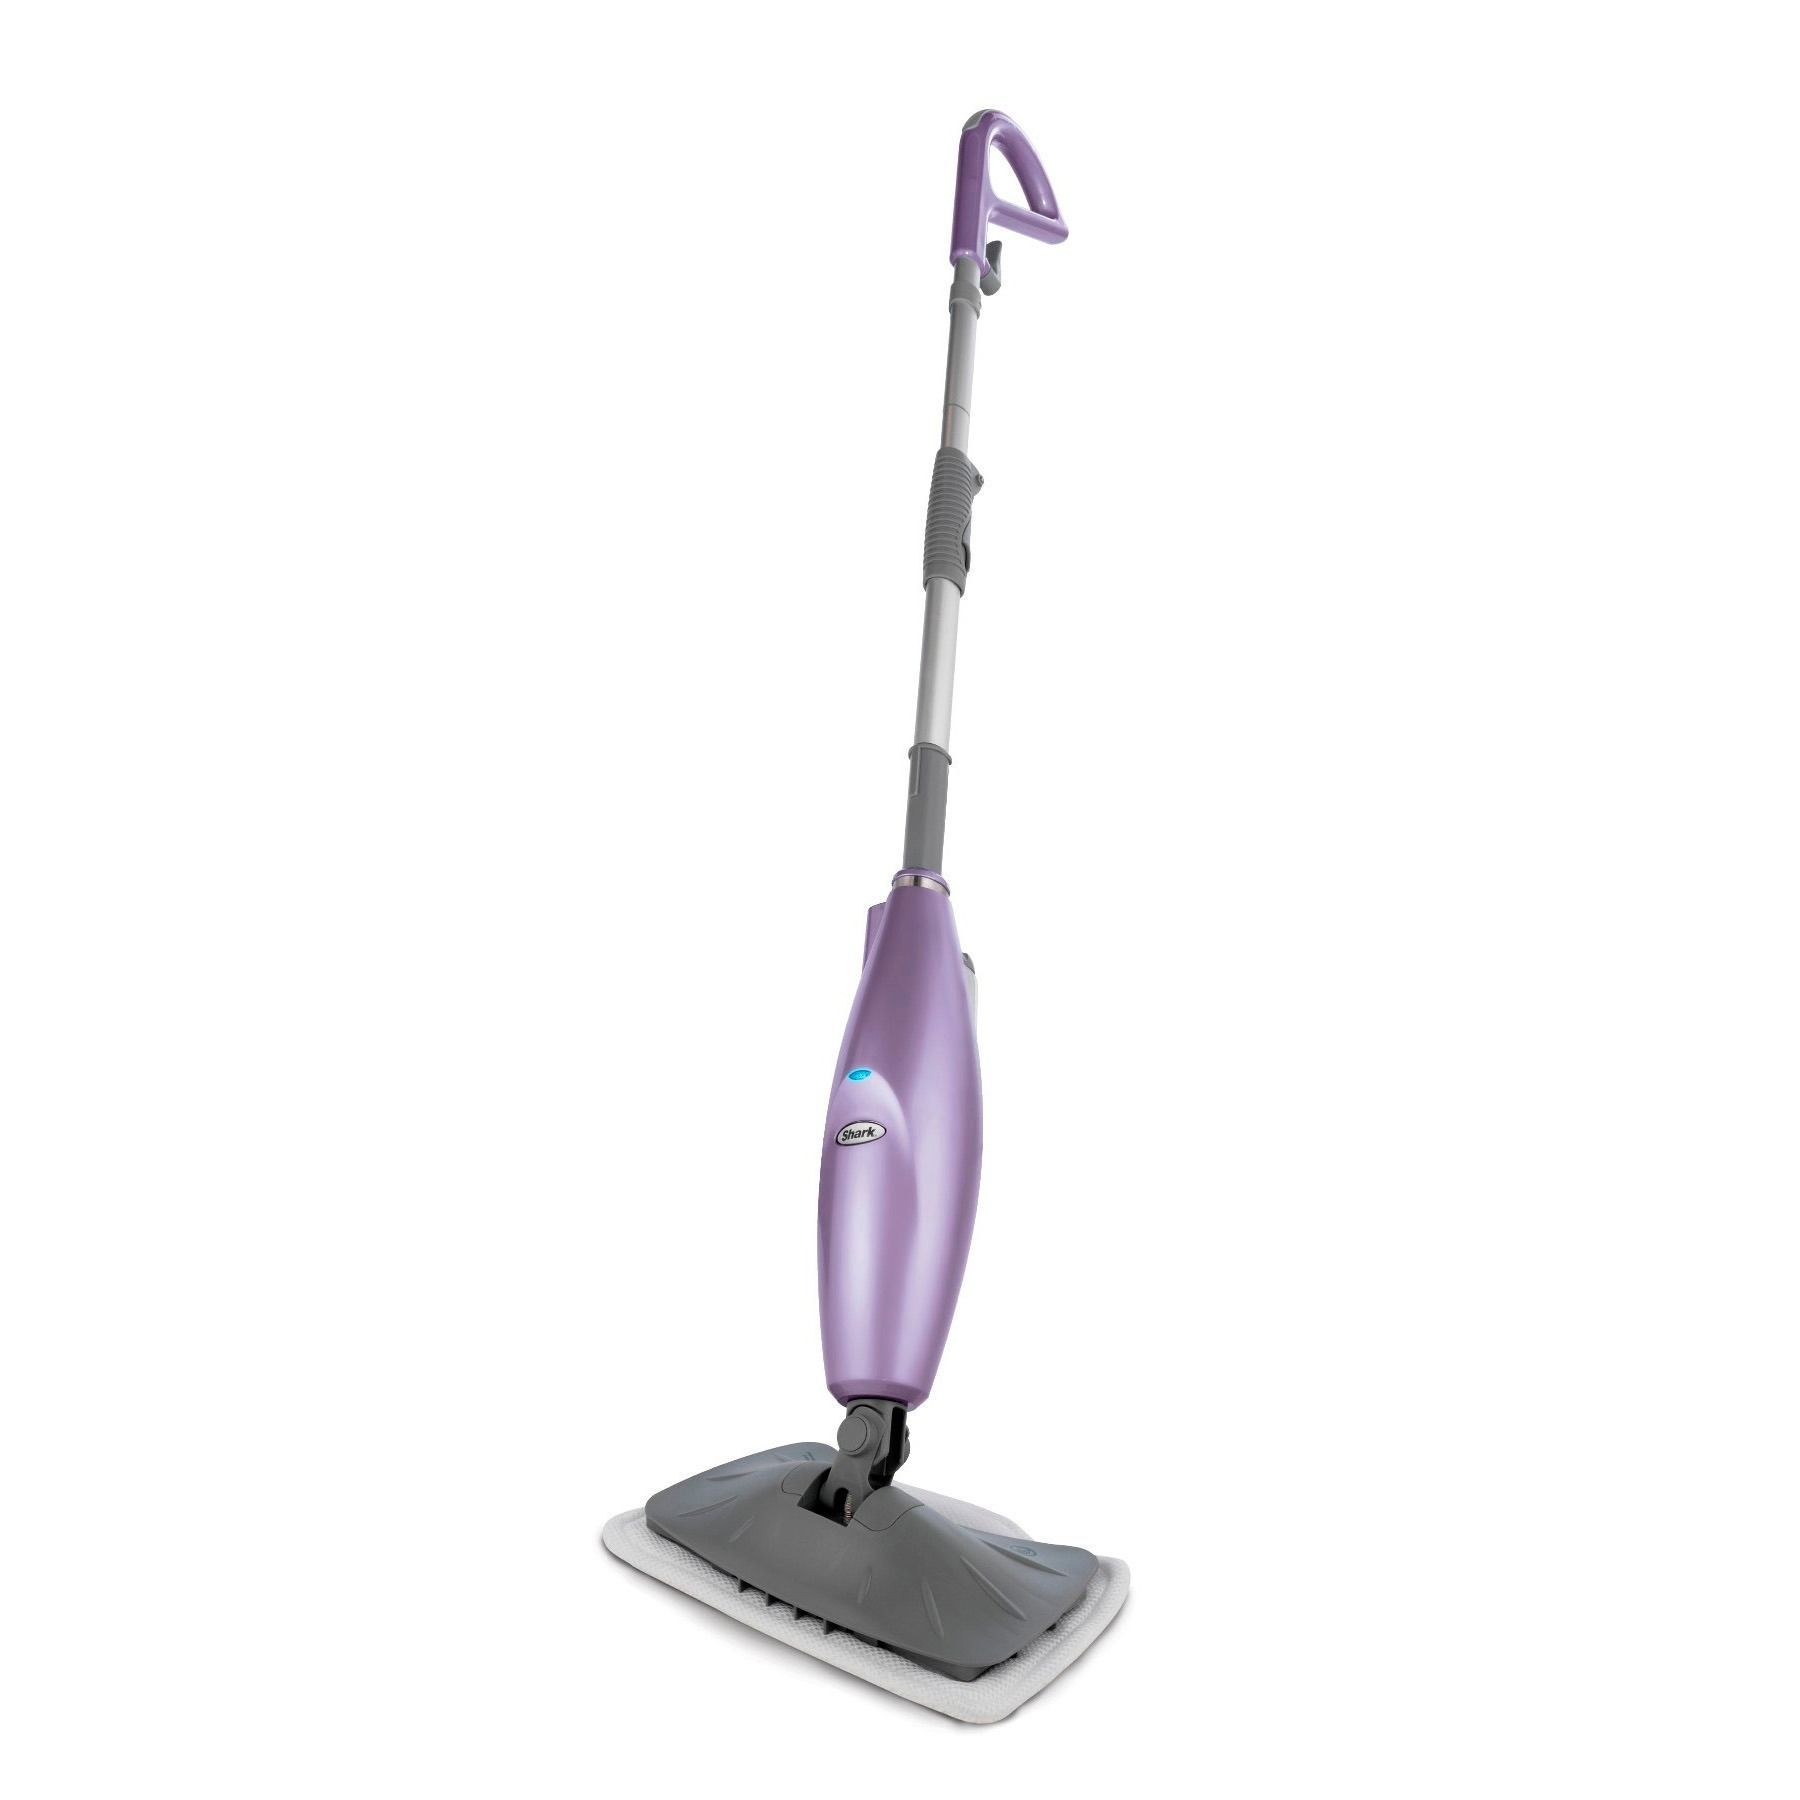 Online Shopping Bedding Furniture Electronics Jewelry Clothing More Steam Mop Cleaning Tile Floors Cleaning Appliances